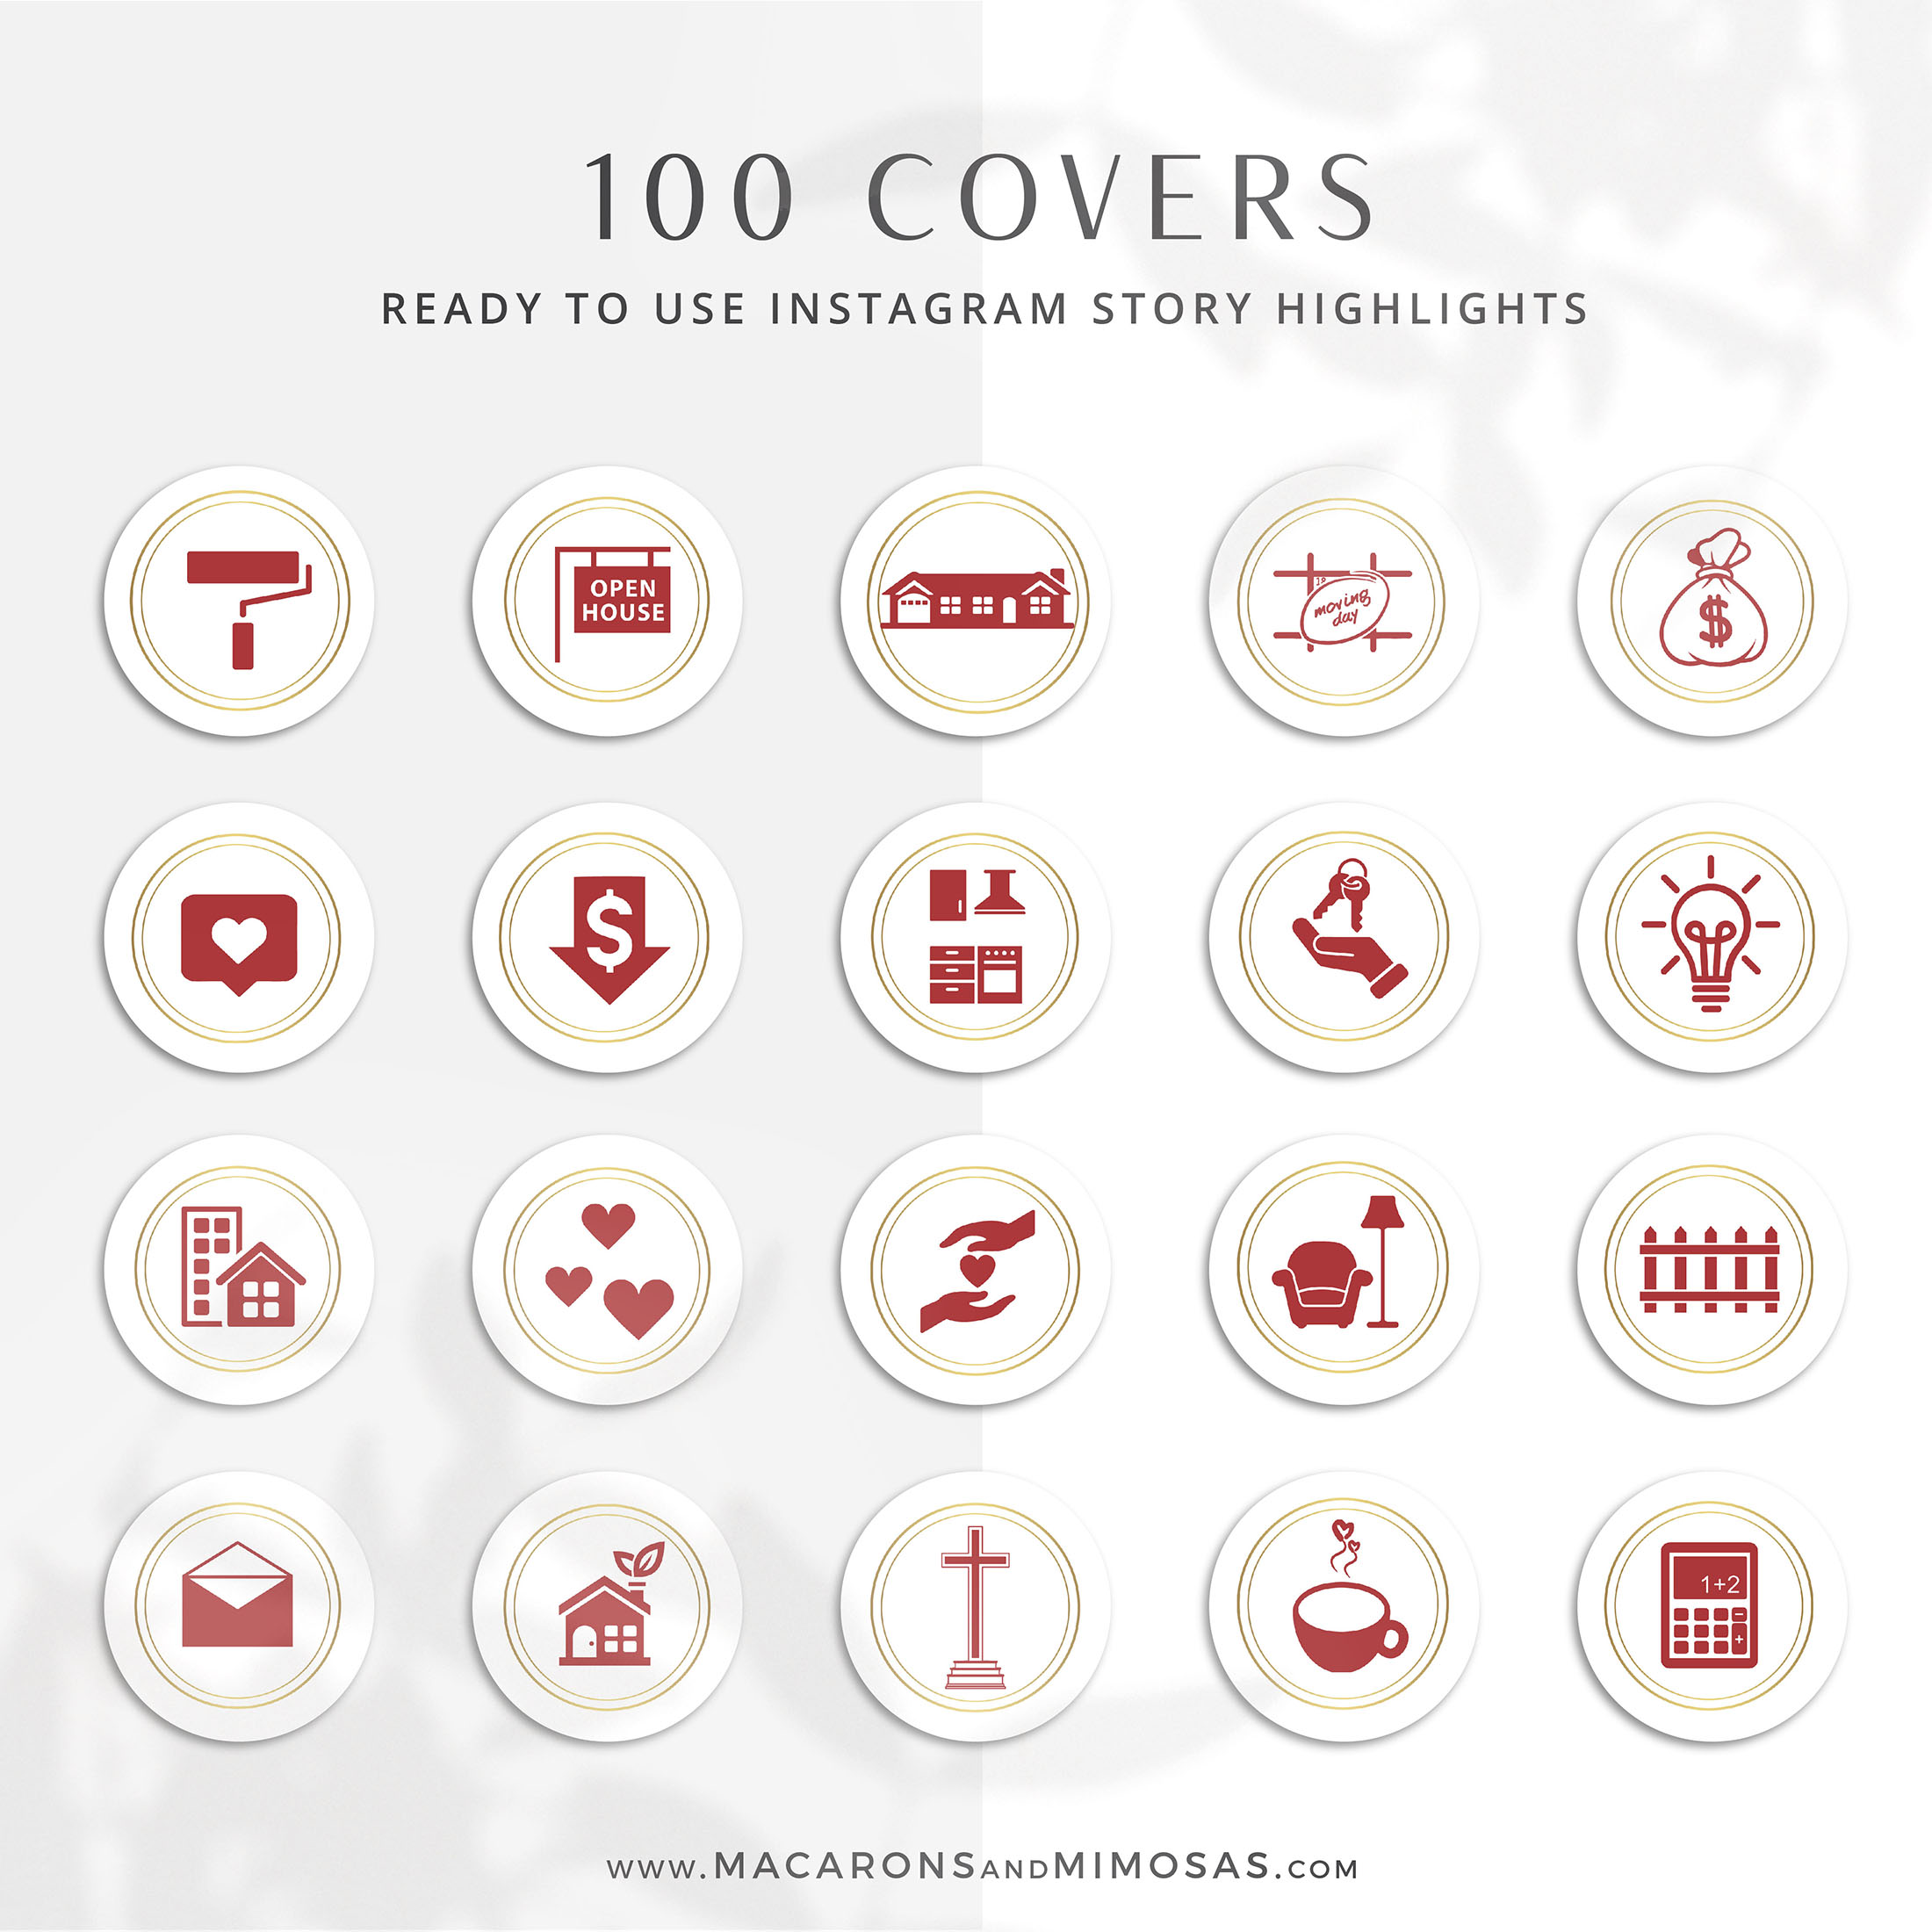 Keller Williams Instagram Icons Macarons And Mimosas